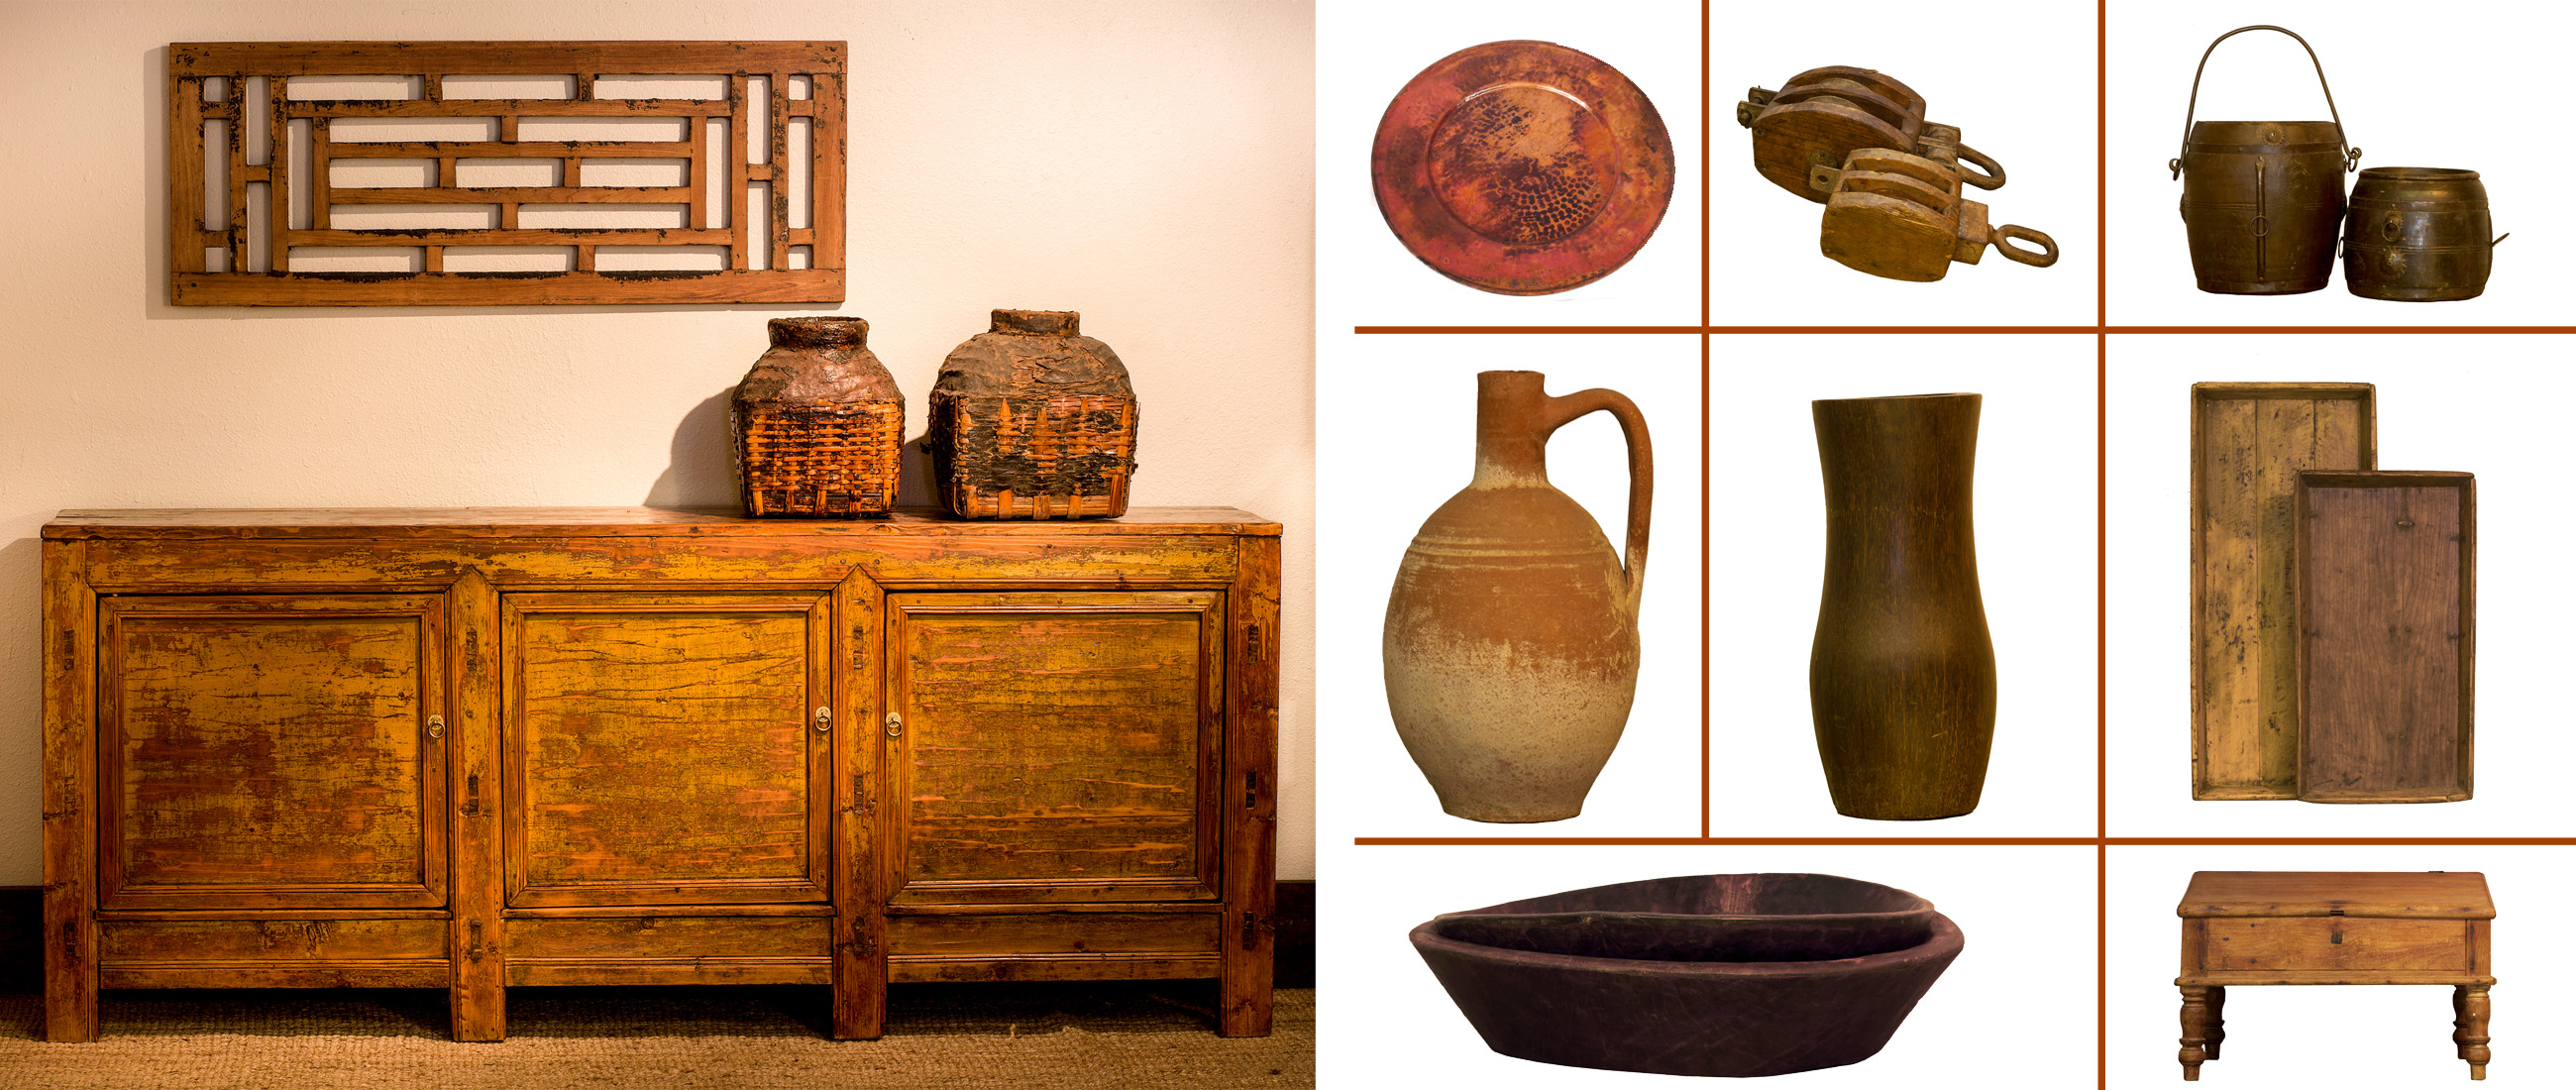 Indus Design Imports - The largest wholesale rustic and old